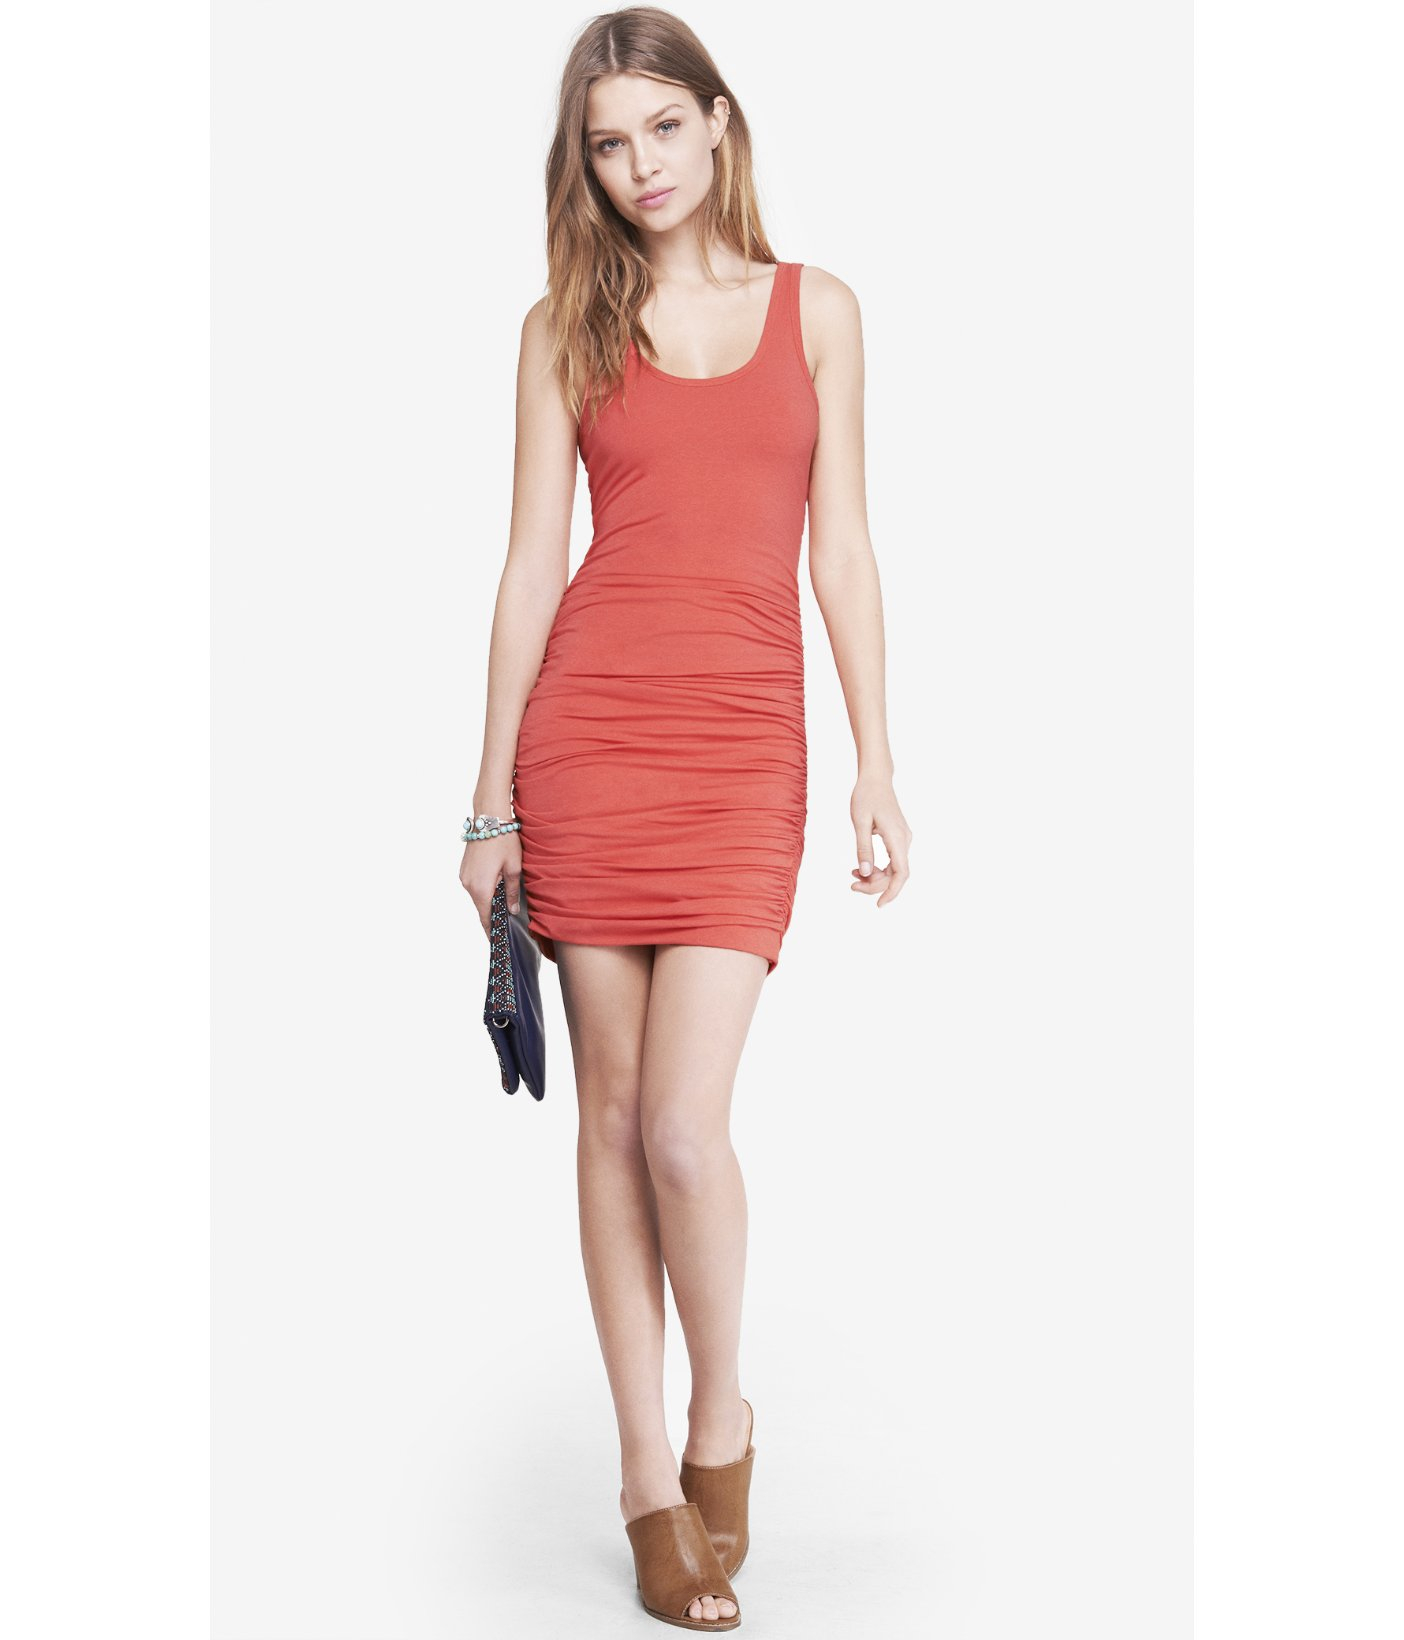 503d996eb Lyst - Express Coral Ruched Tank Dress in Orange